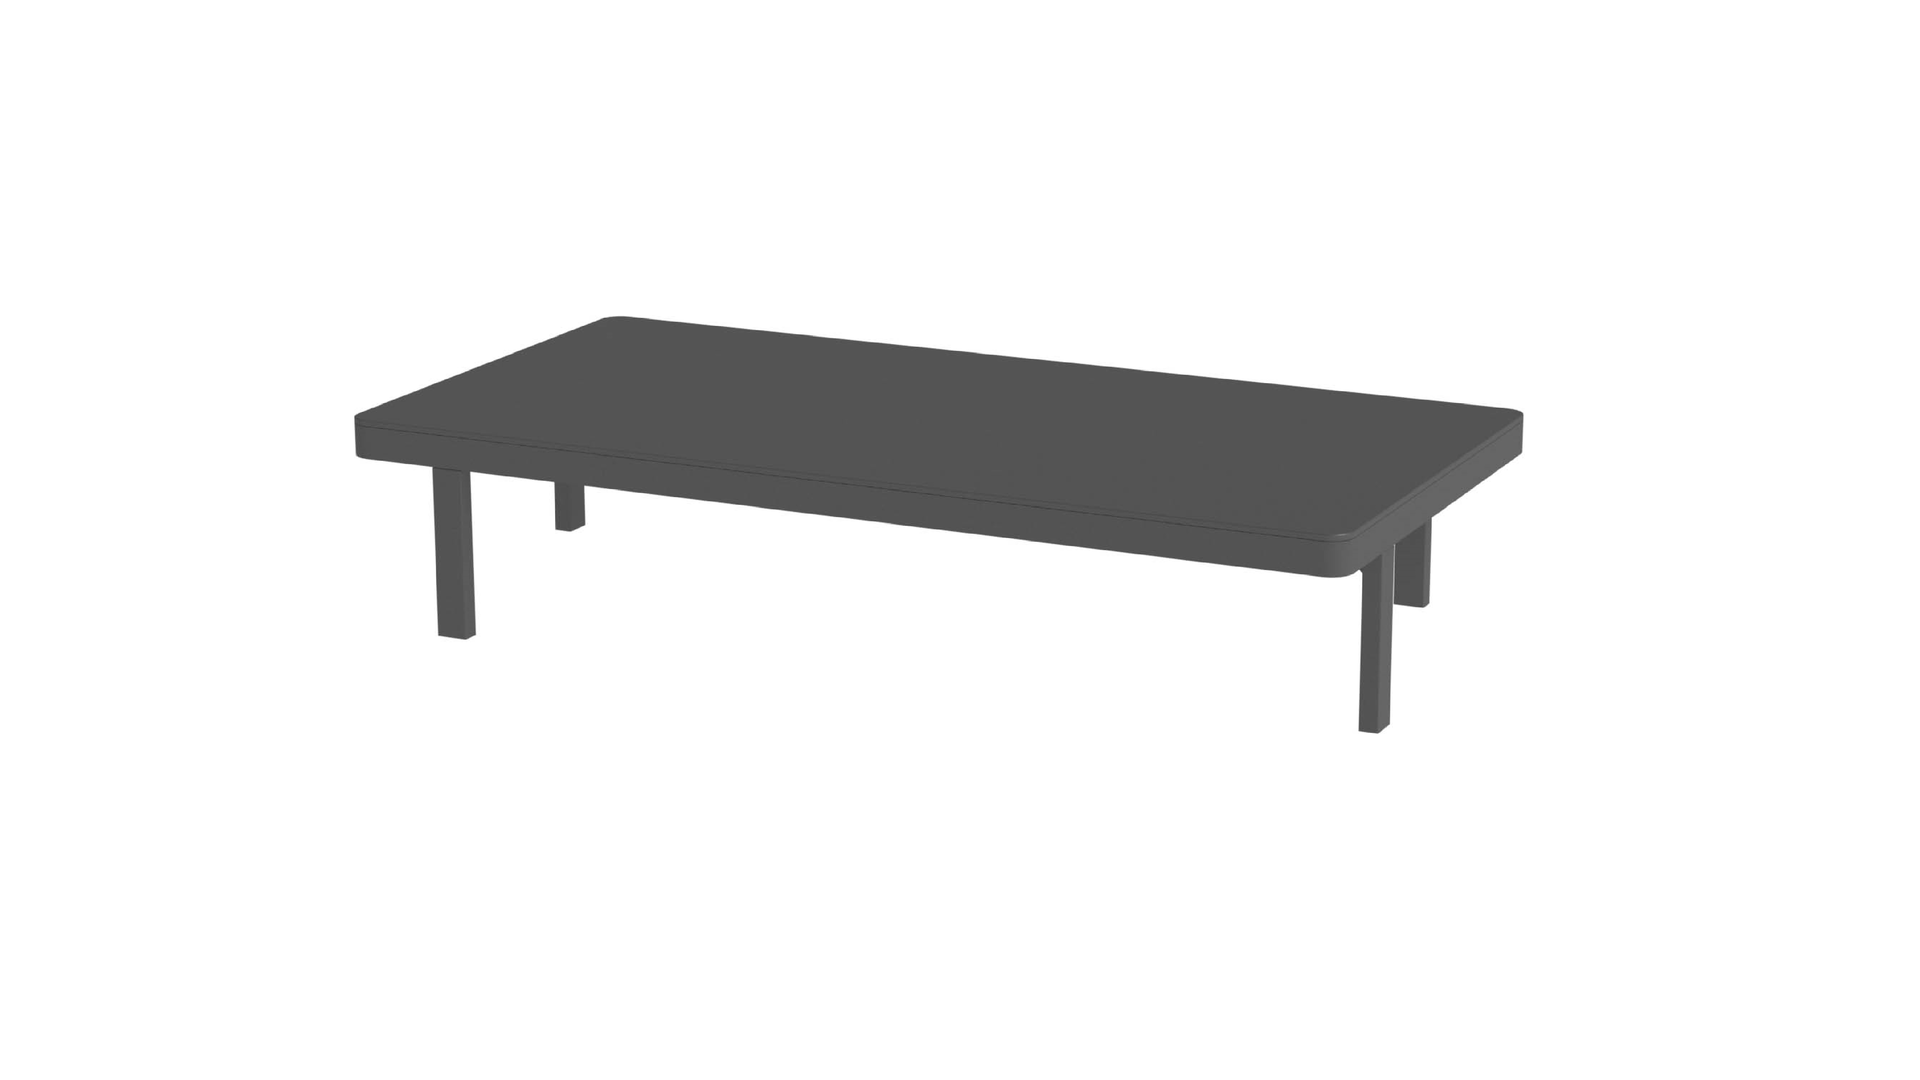 Alura lounge table 160.png